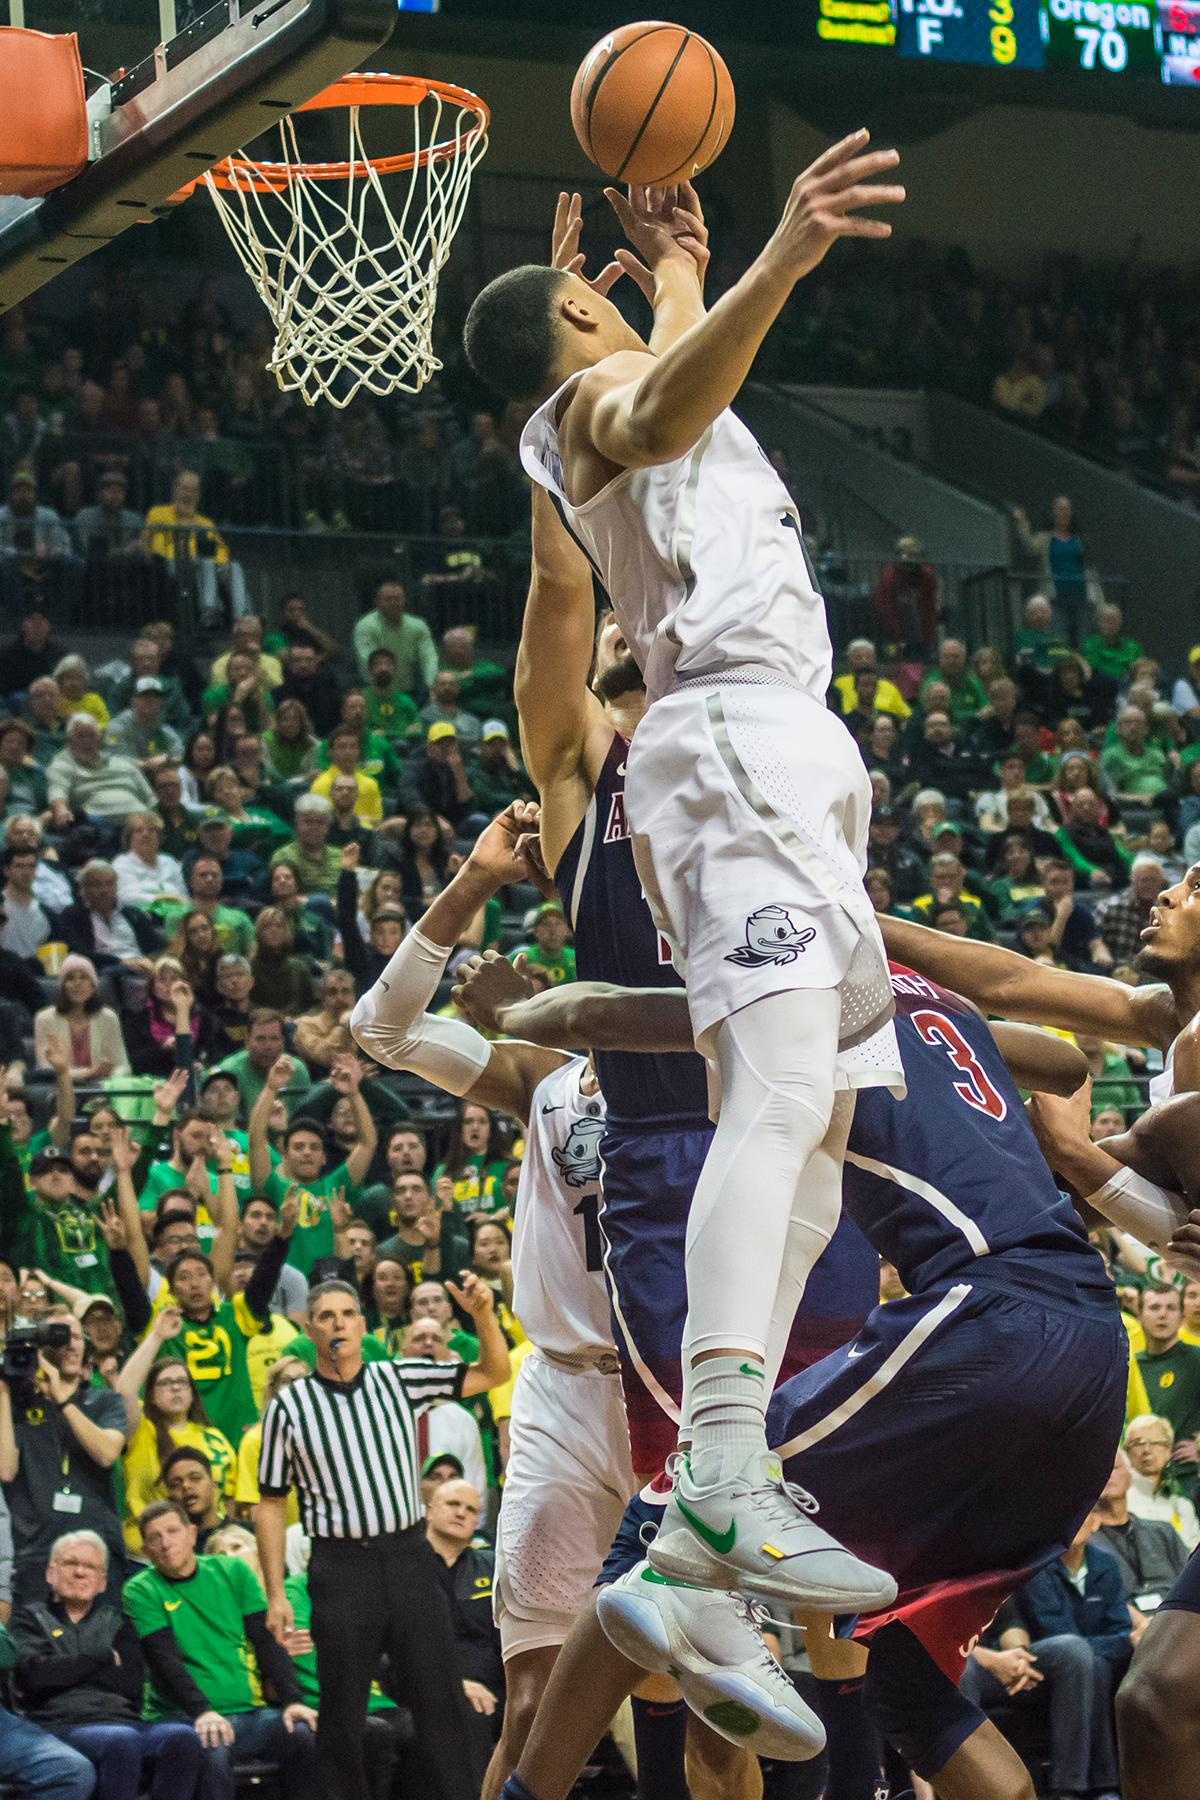 Oregon's Keith Smith goes for a layup against Arizona defenders in their matchup at Matthew Knight Arean Saturday. The Ducks upset the fourteenth ranked Wildcats 98-93 in a stunning overtime win in front of a packed house of over 12,000 fans for their final home game to improve to a 19-10 (9-7 PAC-12) record on the season. Oregon will finish out regular season play on the road in Washington next week against Washington State on Thursday, then Washington on the following Saturday. (Photo by Colin Houck)